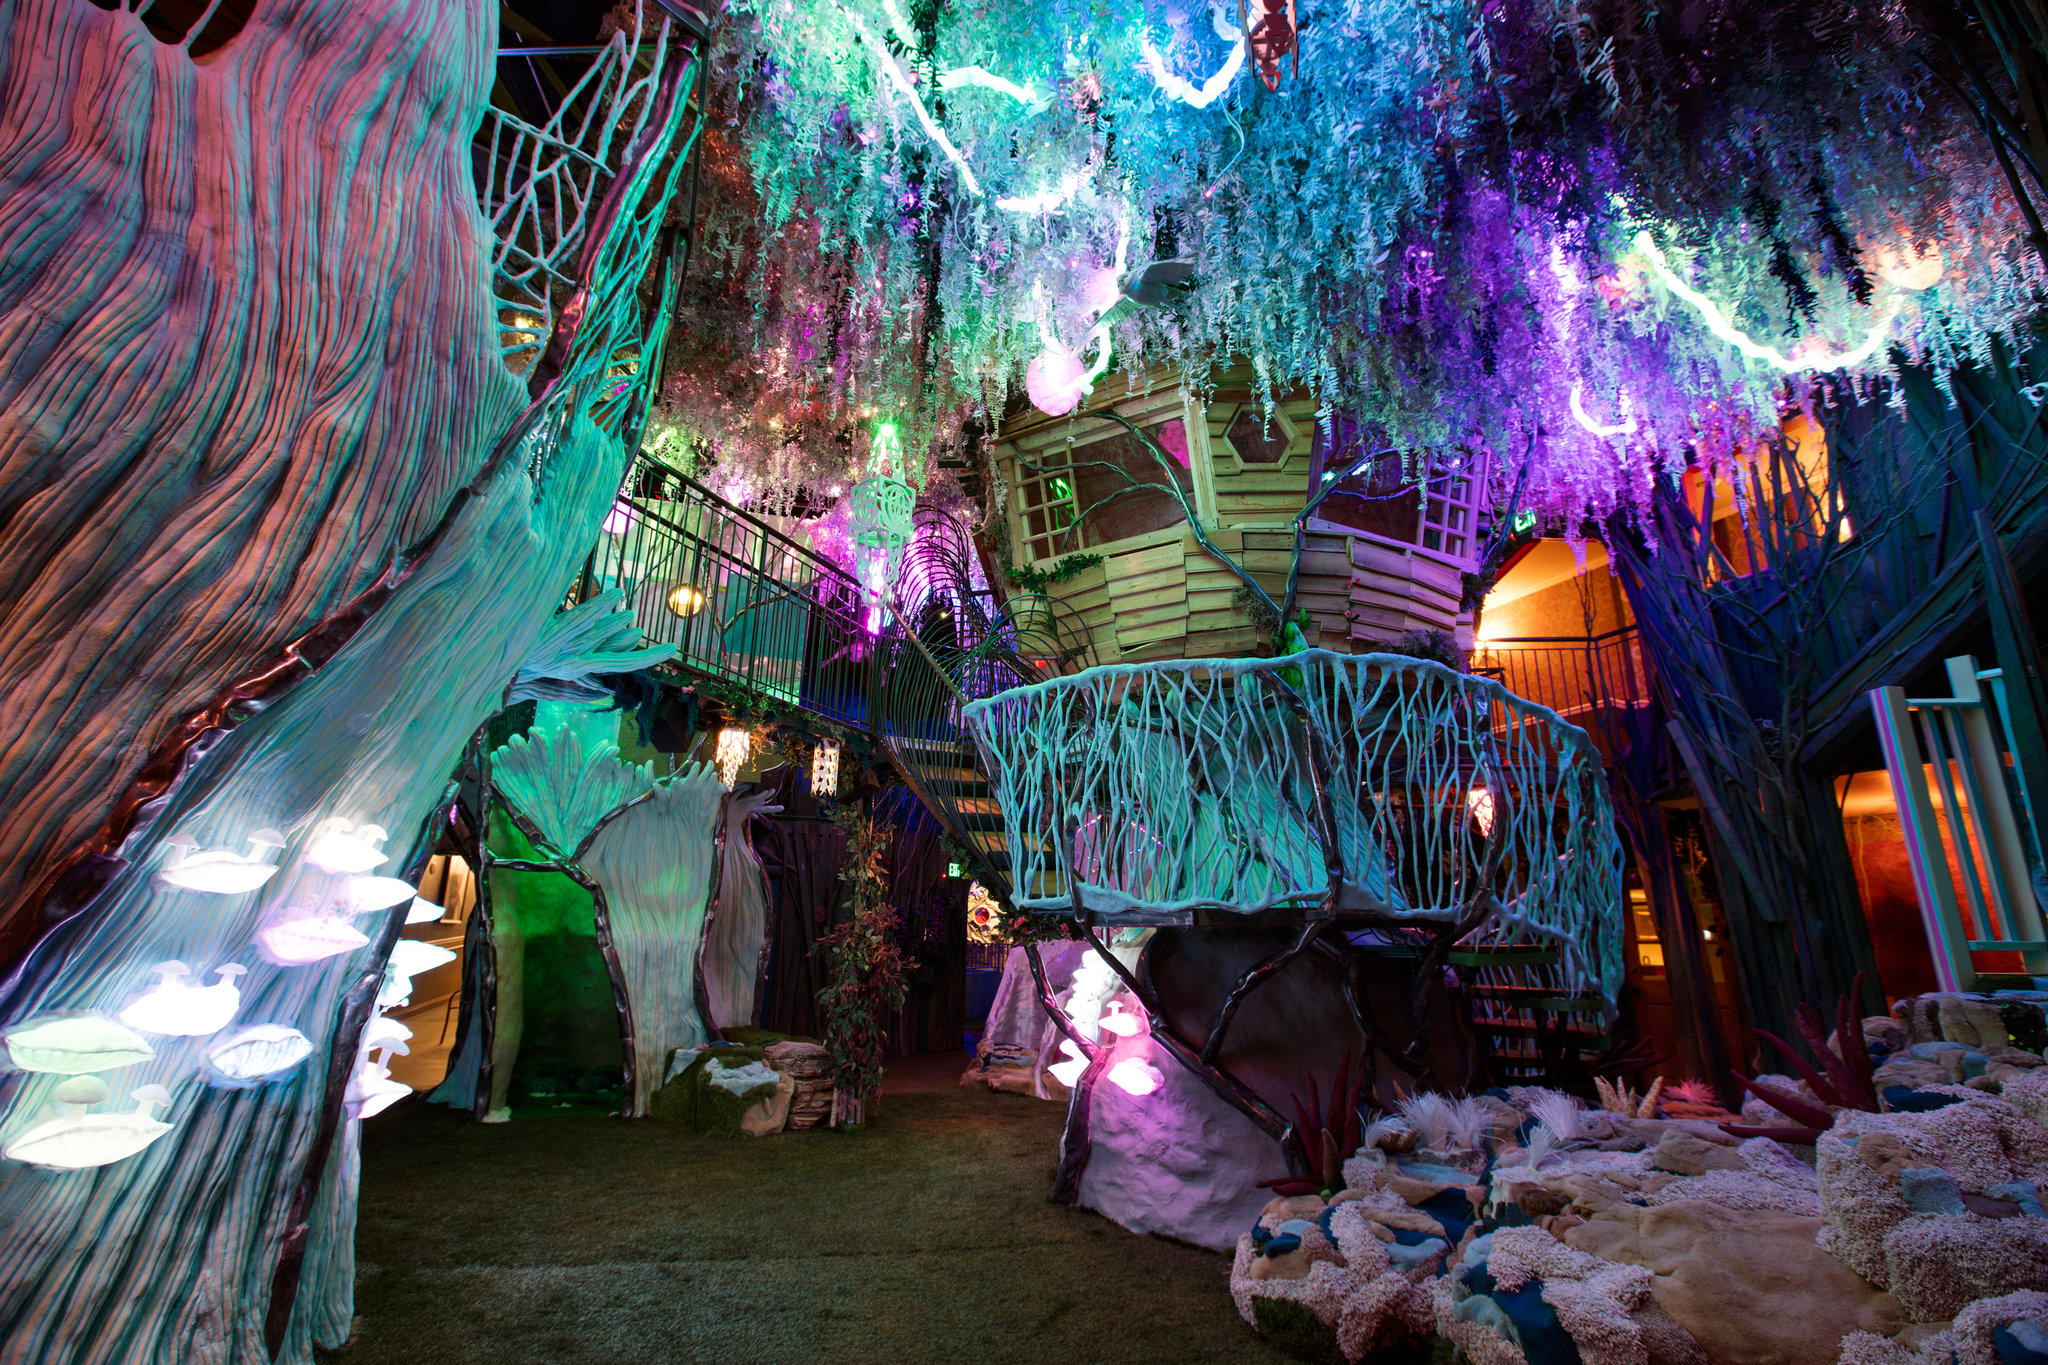 House of Eternal Return, Meow Wolf Collective | Collater.al 2